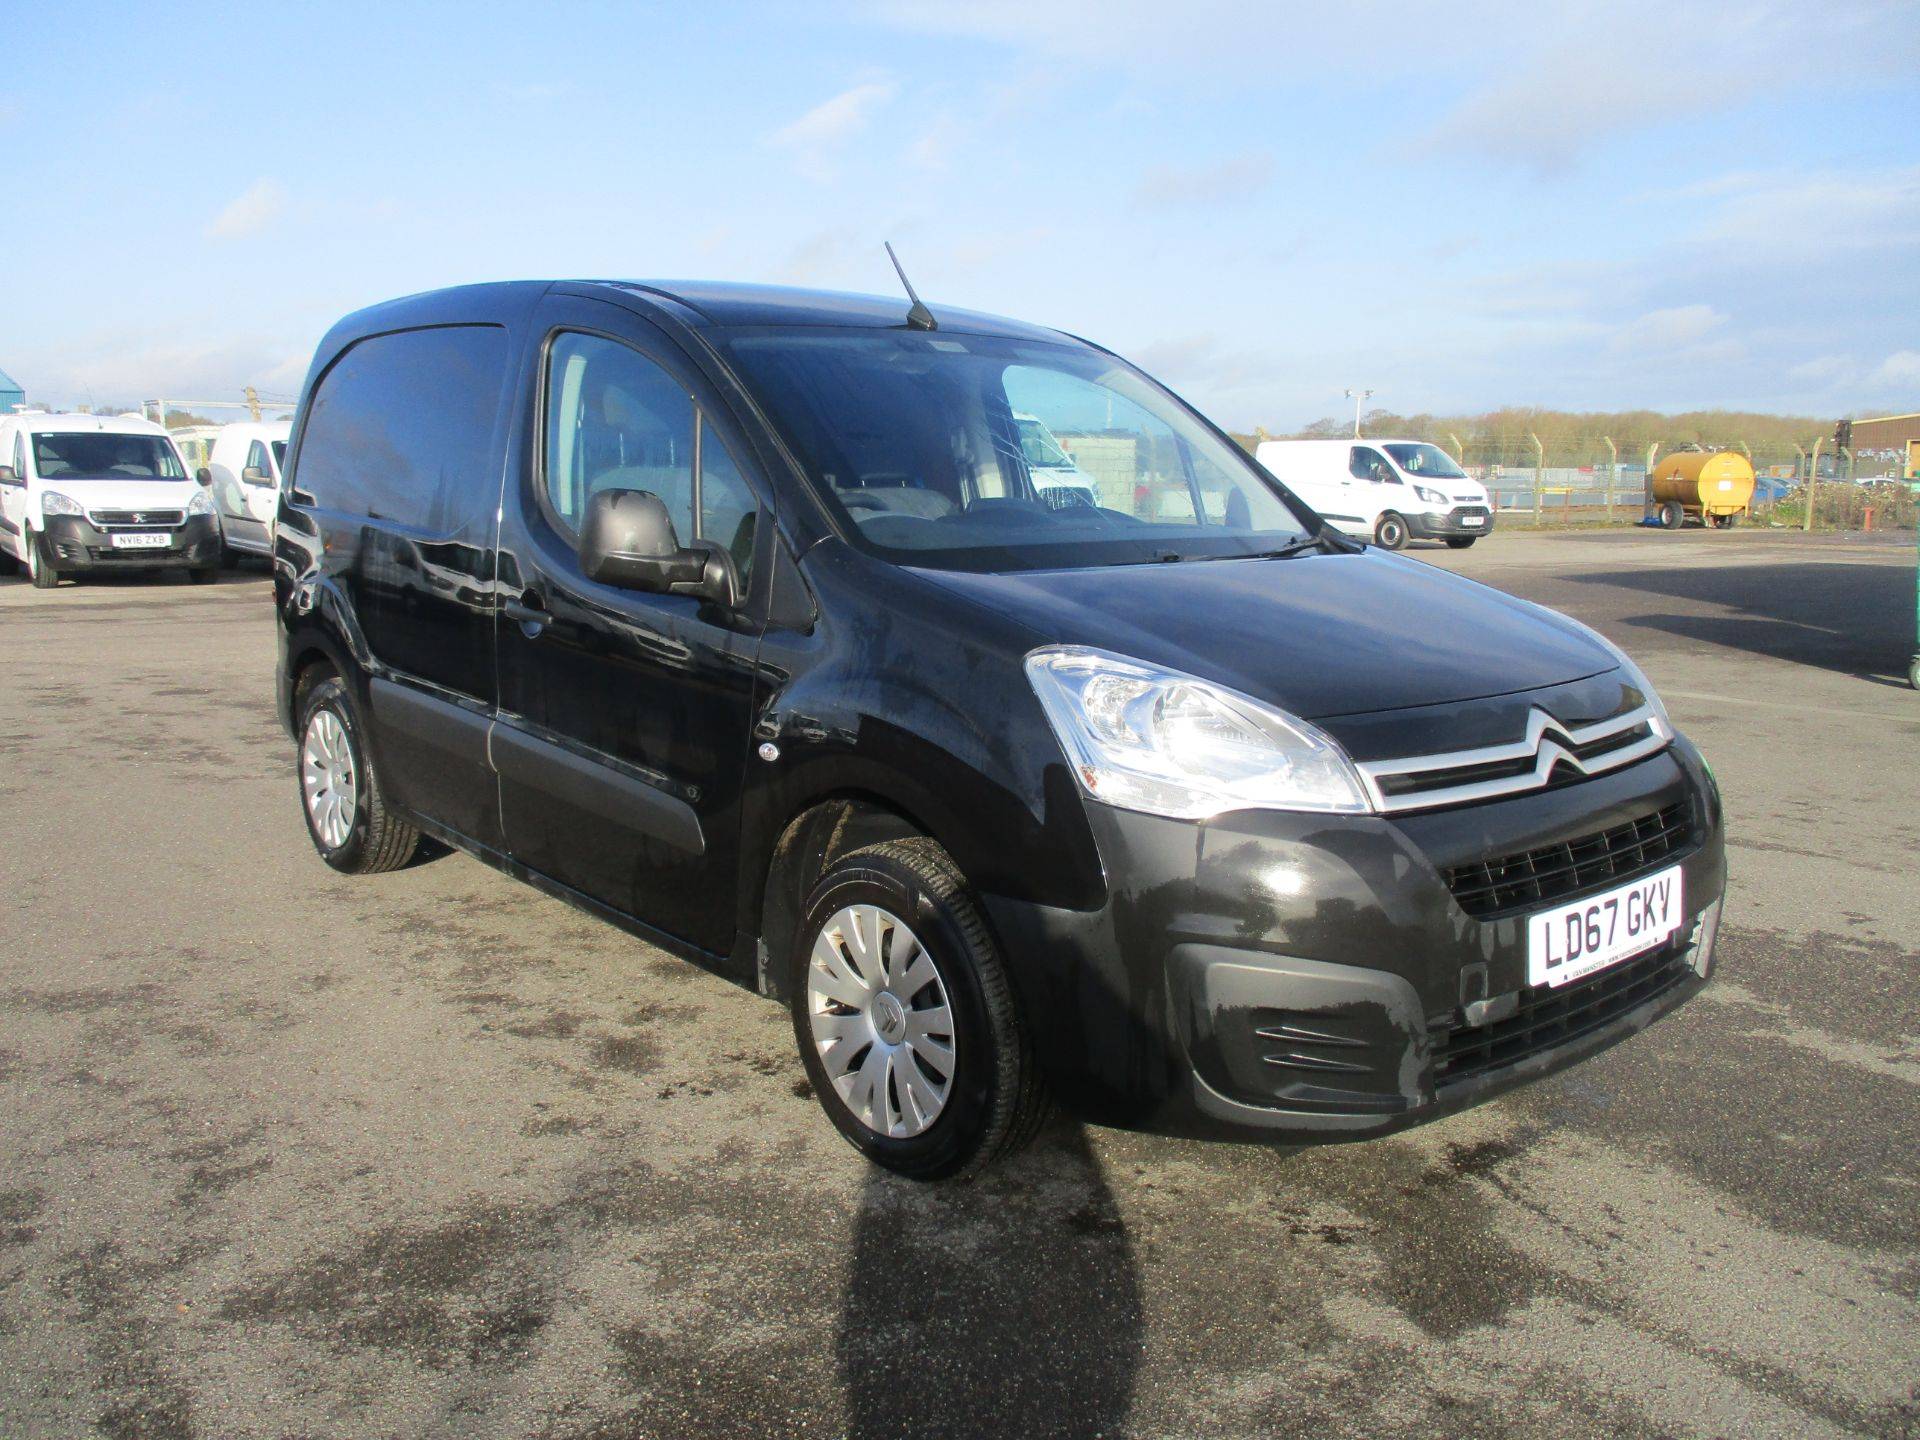 2017 Citroen Berlingo L1 DIESEL 1.6 BLUE HDI 625KG ENTERPRISE 75PS EURO 6. AIR CON, SAT NAV, 3 SEATER (LD67GKV)